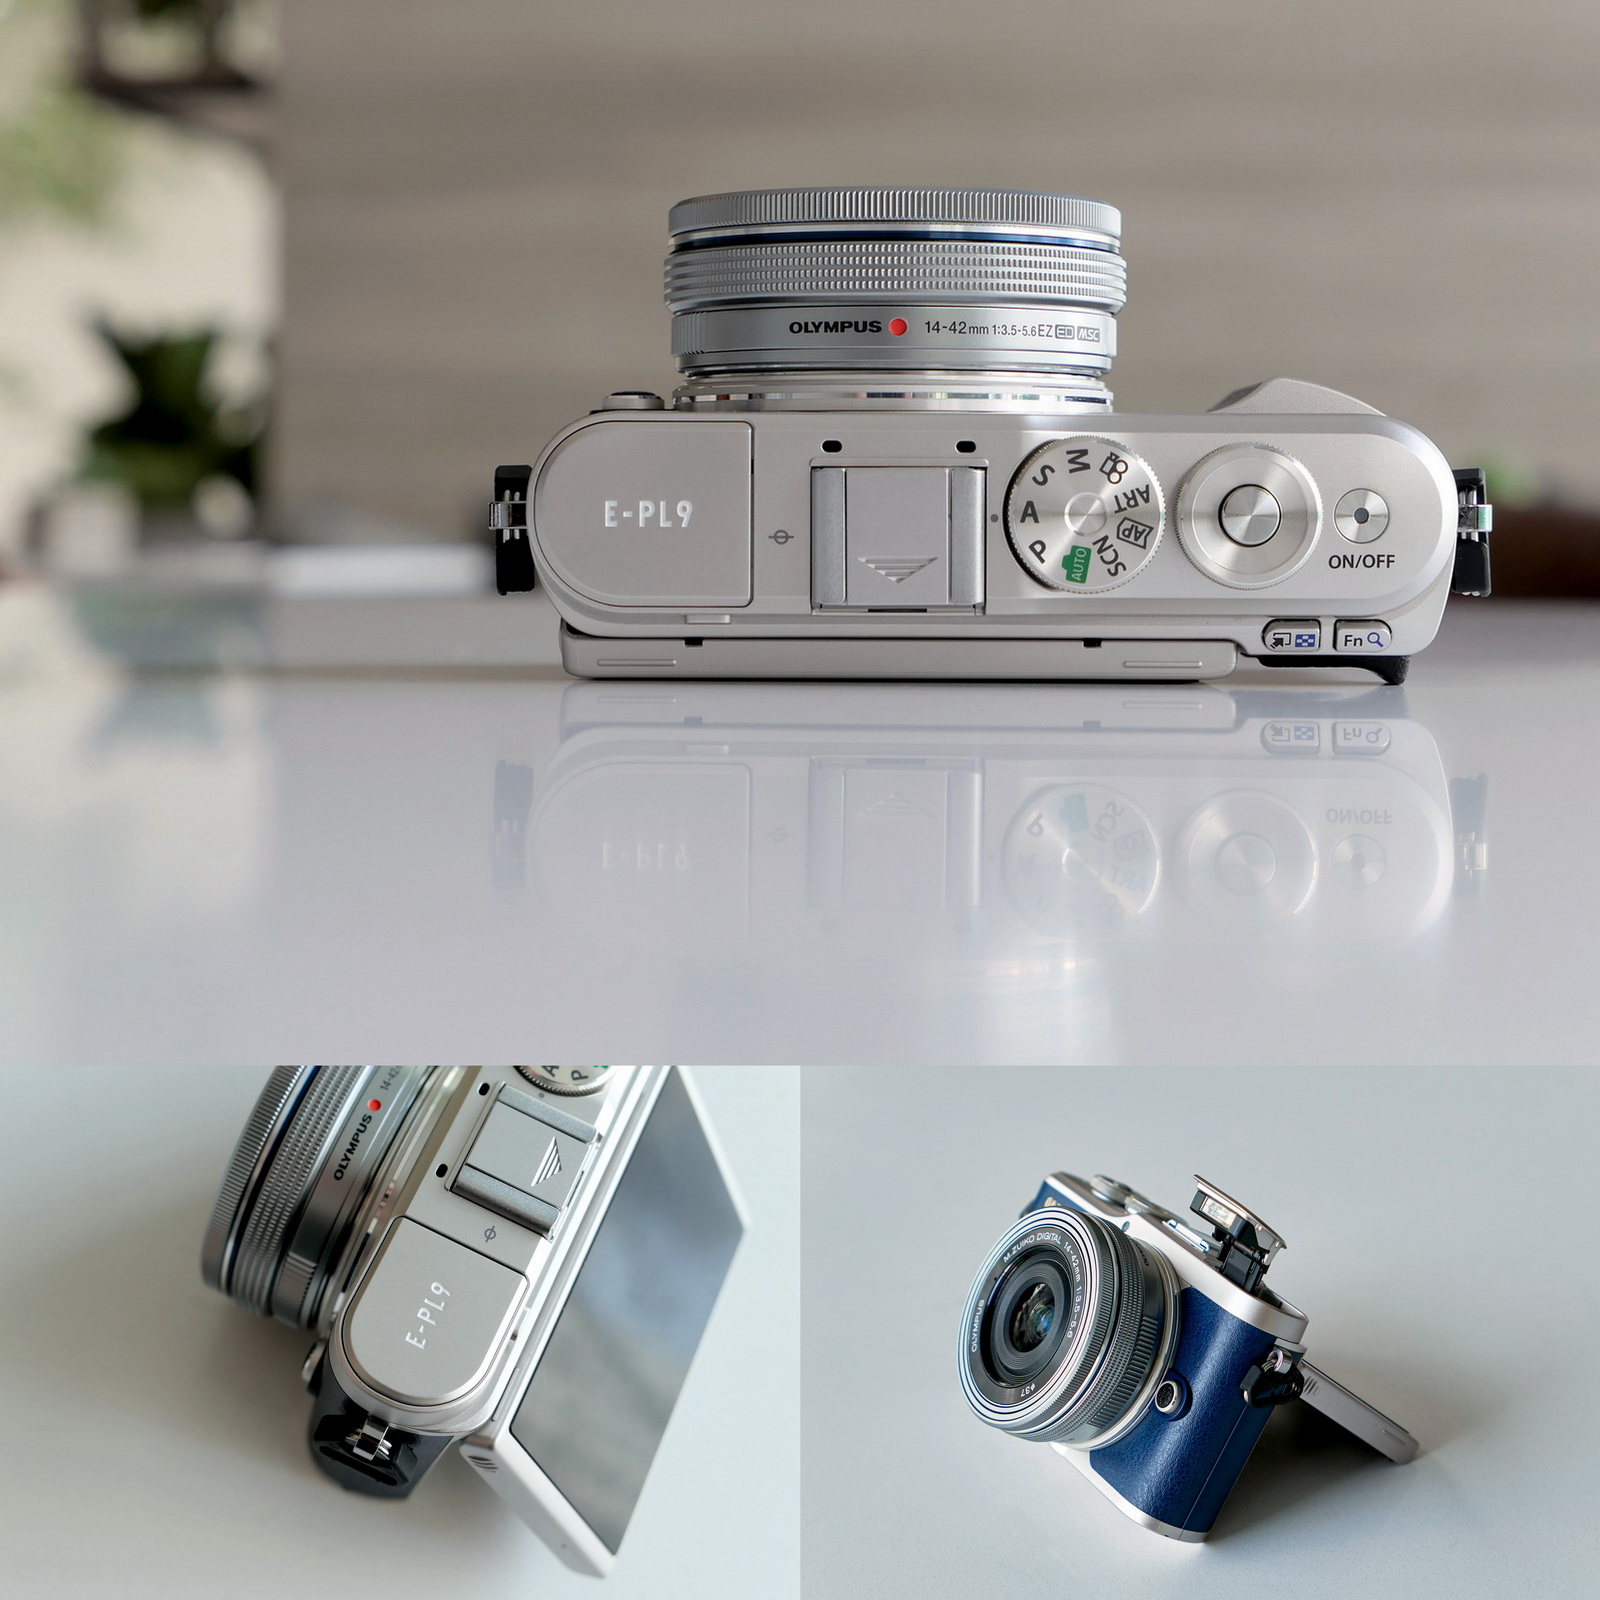 Review The 2018 Olympus E Pl9 Ming Thein Photographer Om D M10 Mark Iii Kit 14 42 Ez Mzuiko 45mm F 18 Silver Is An Extremely Well Built Camera Body Made Of Solid Metal And Feels Robust Reassuring I Welcome Addition Slight Bump On